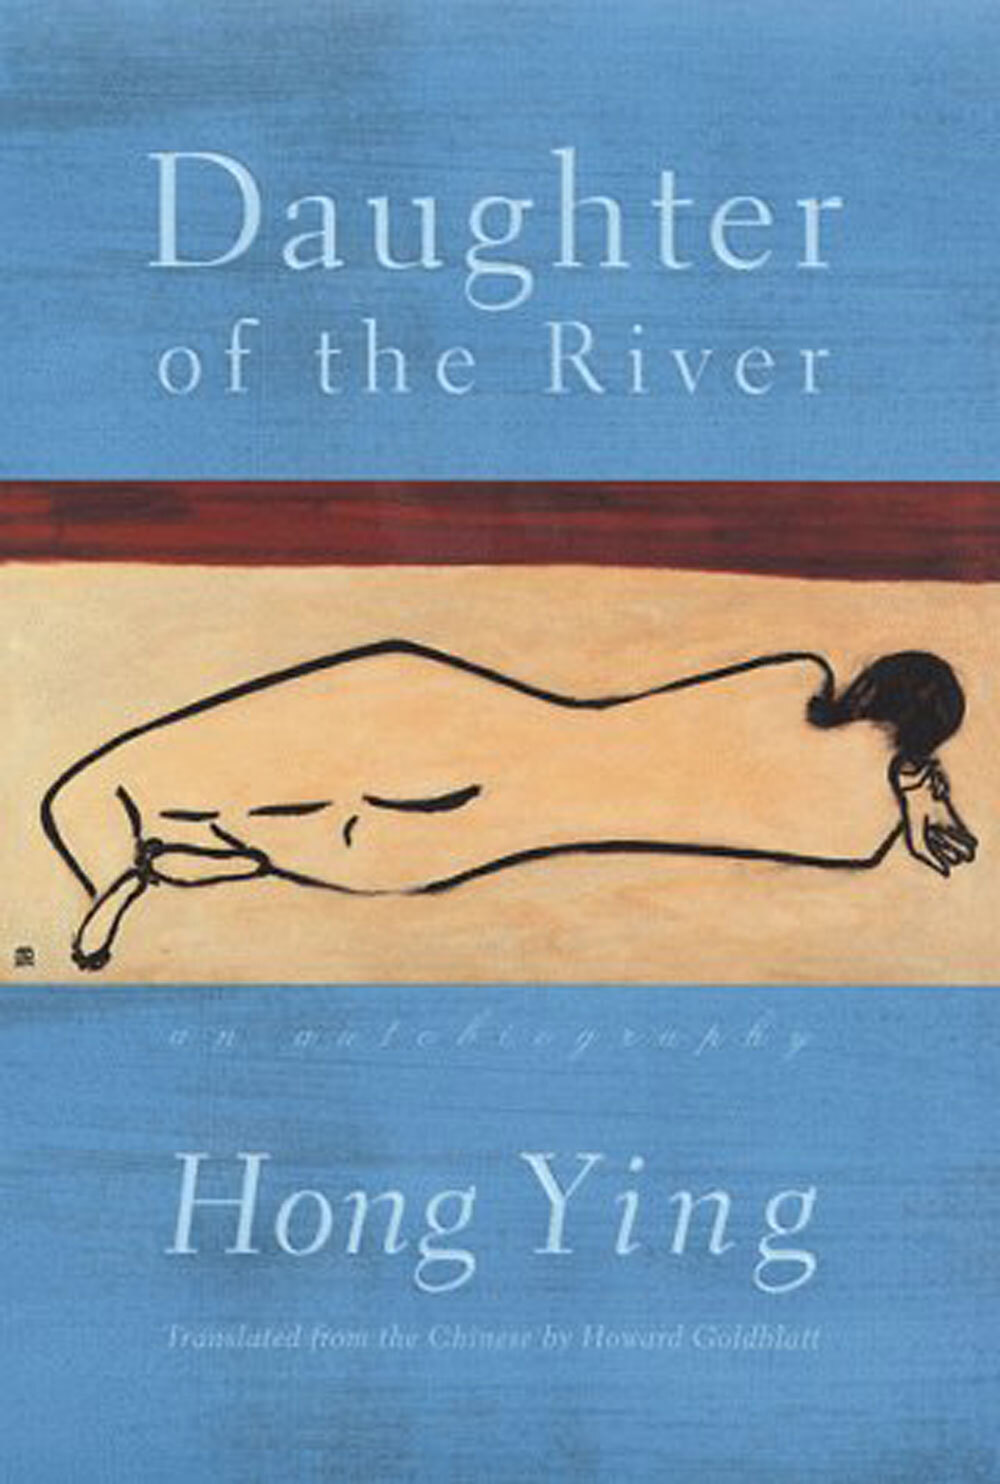 the river essay